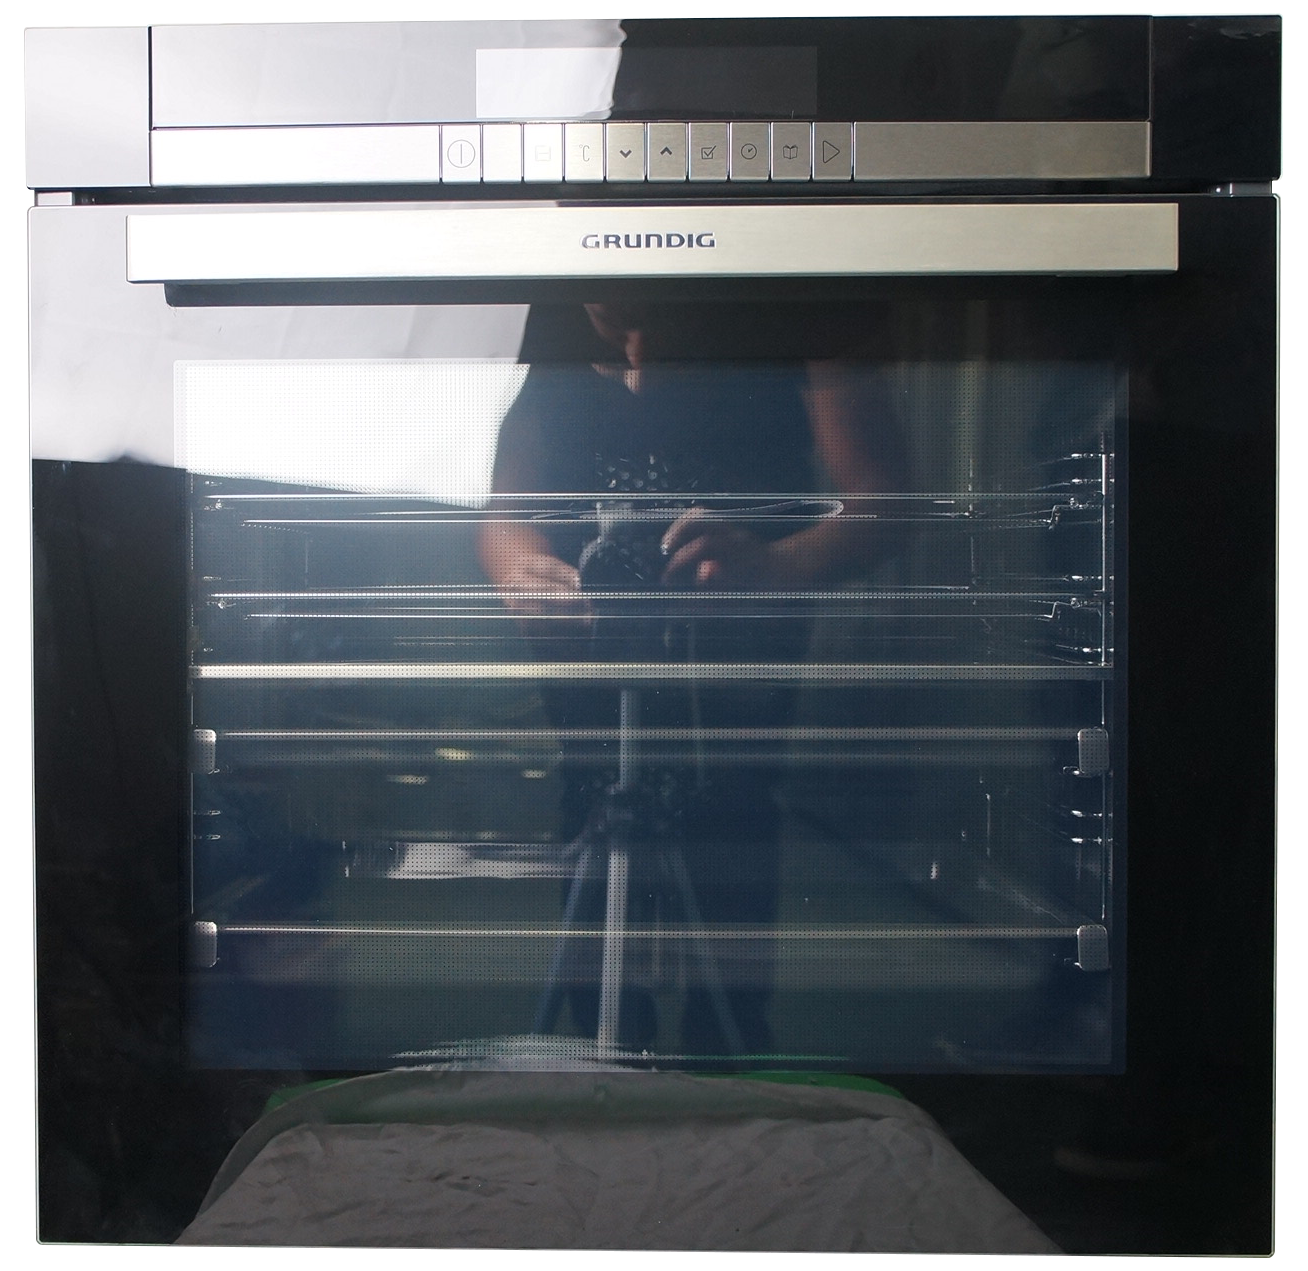 GRUNDIG 60CM  DIVID AND COOK OVEN